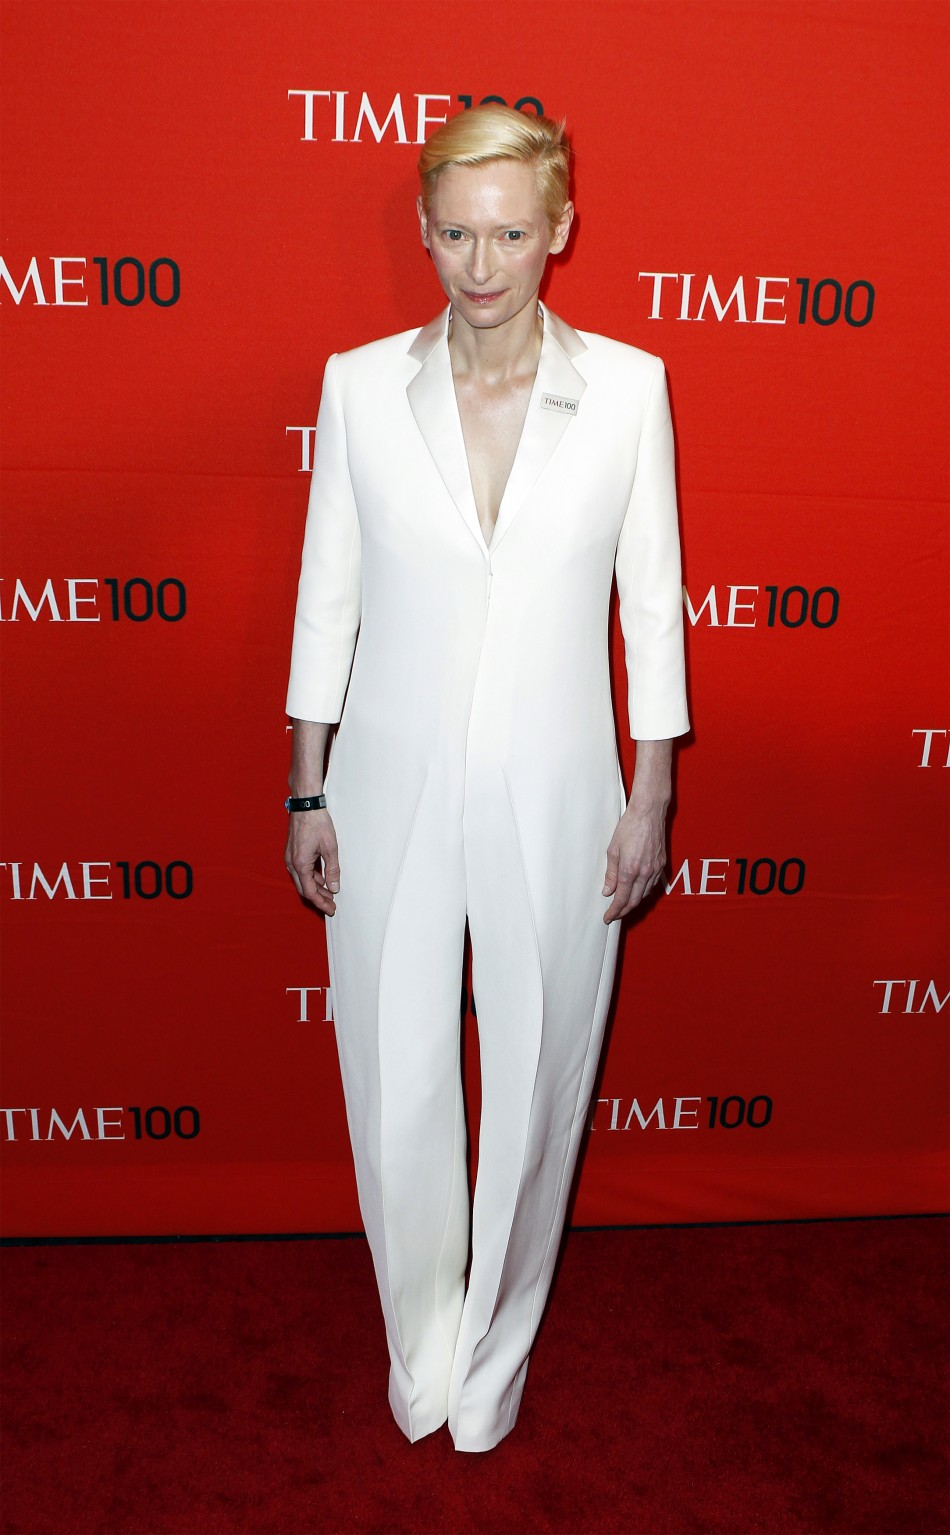 Actress Tilda Swinton arrives to be honored at the Time 100 Gala in New York